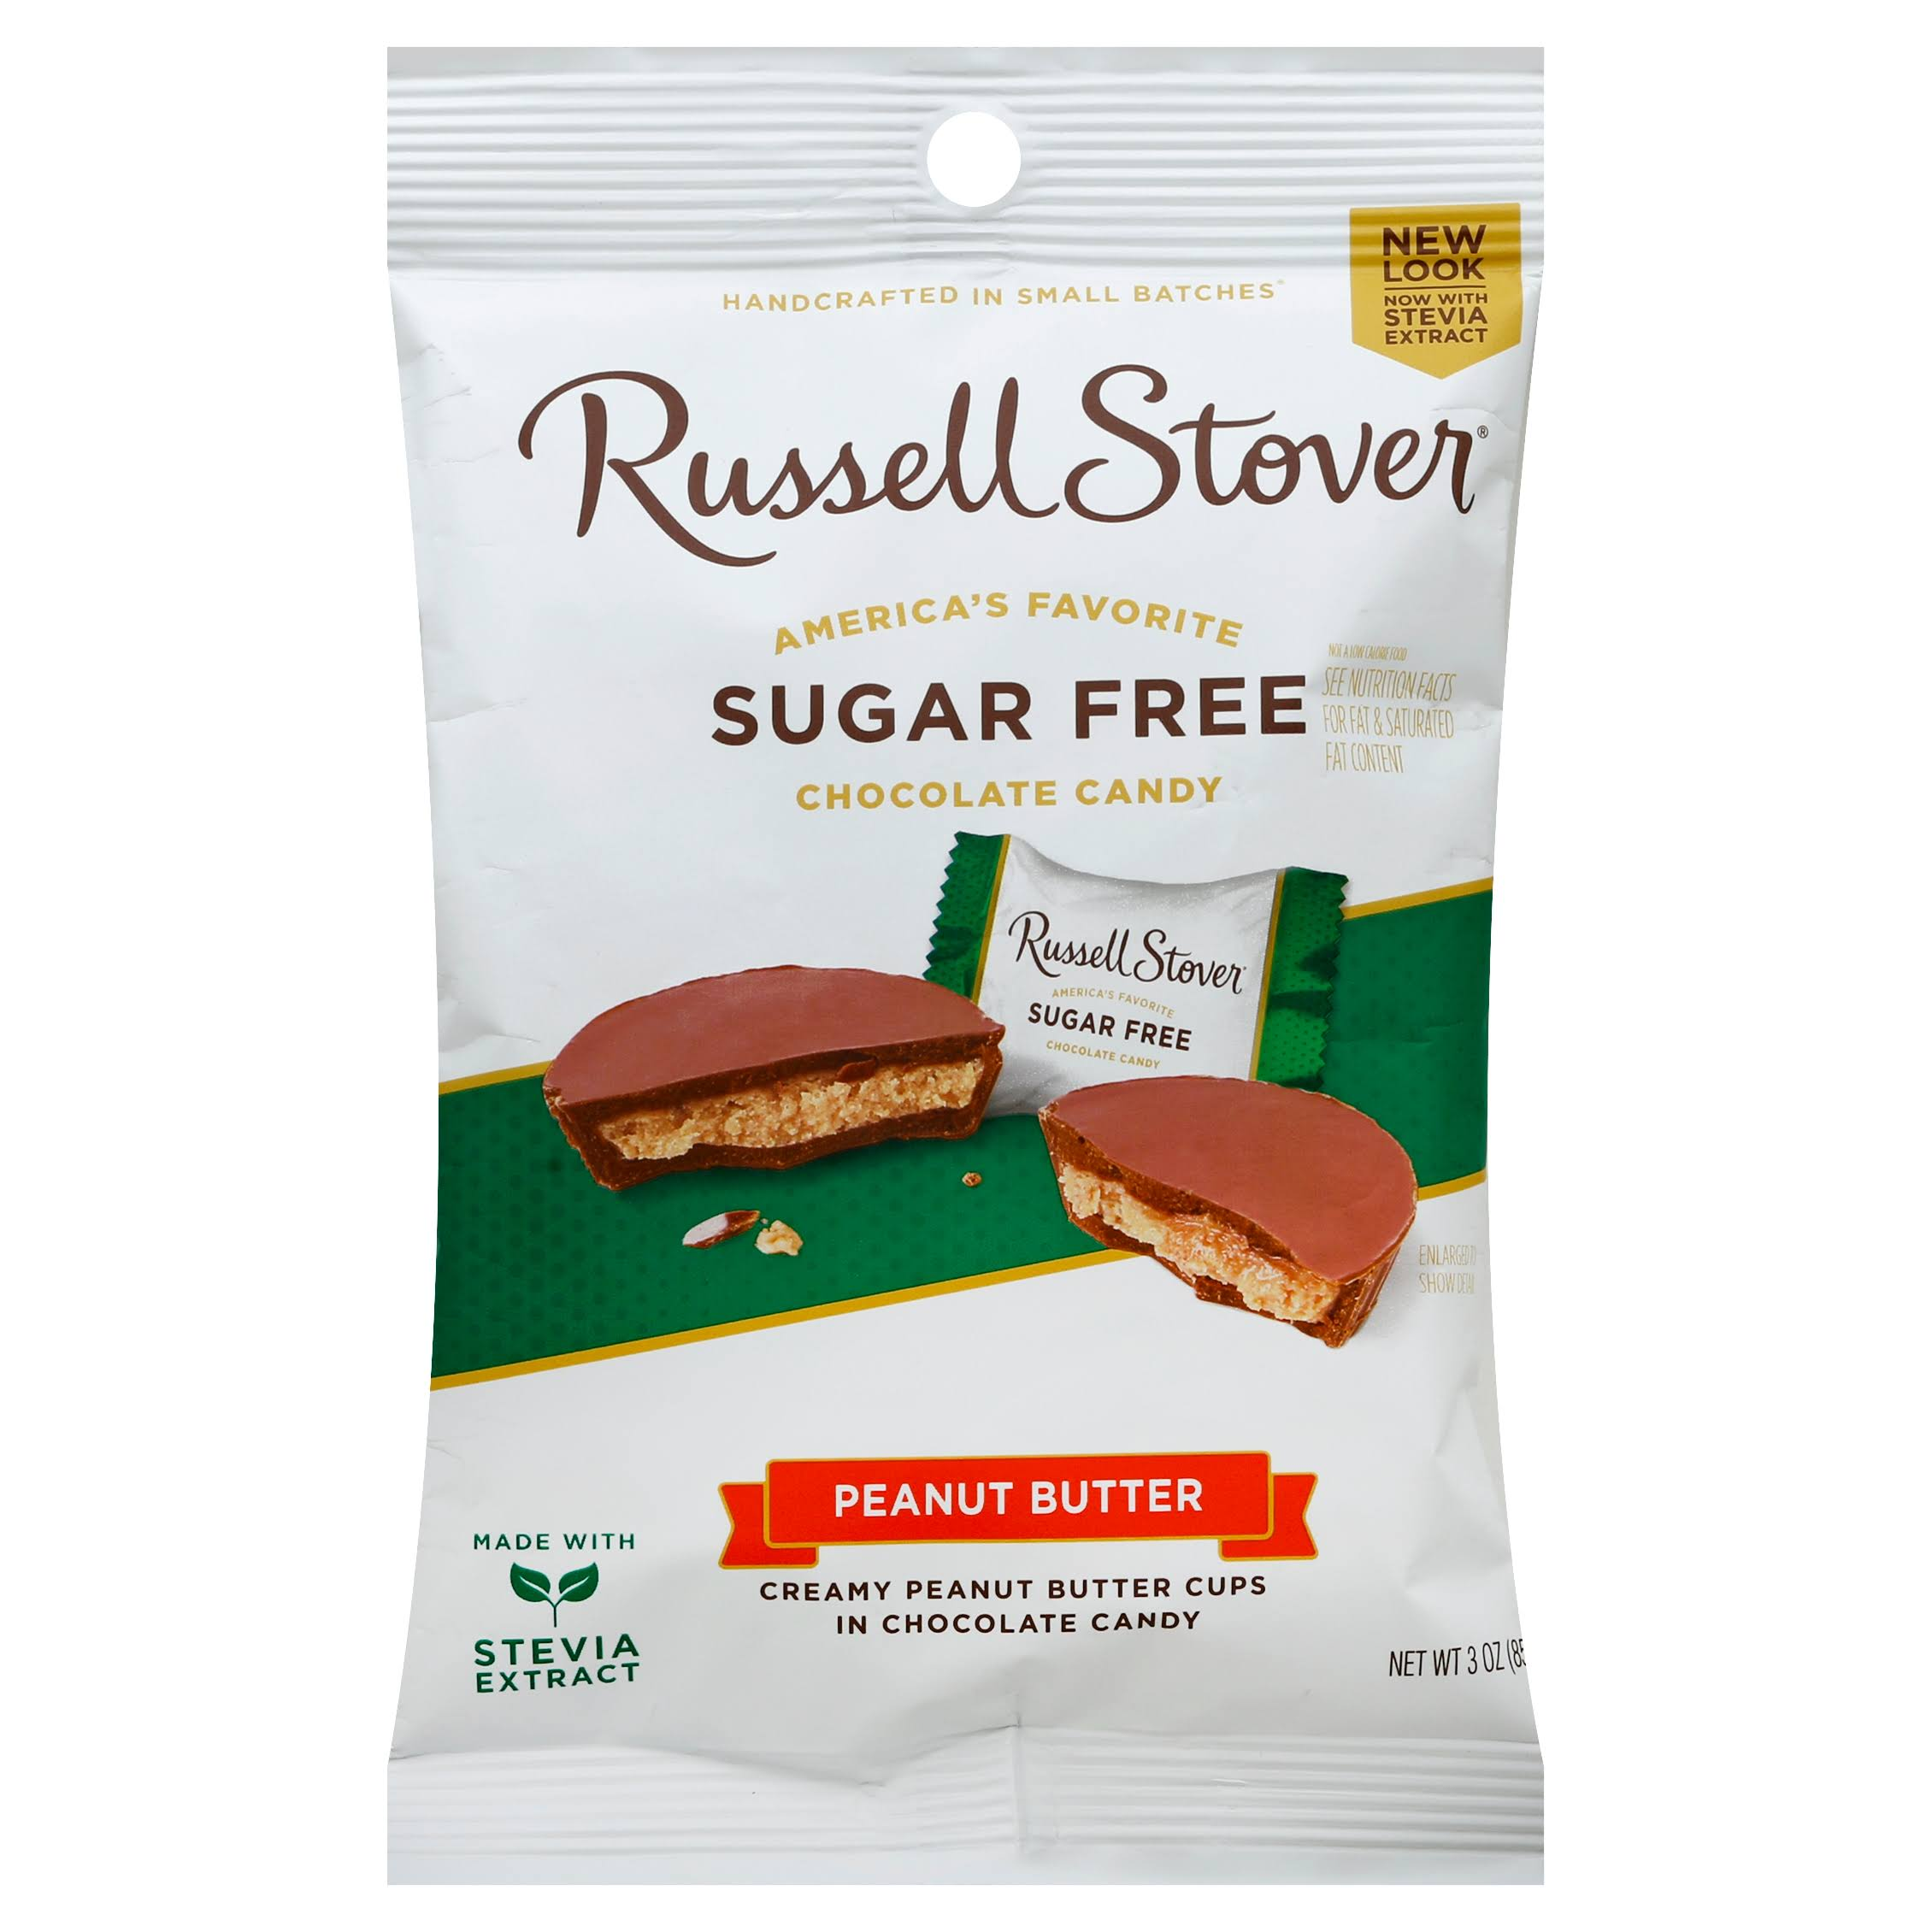 Russell Stover Sugar-Free Peanut Butter Cups - 3oz